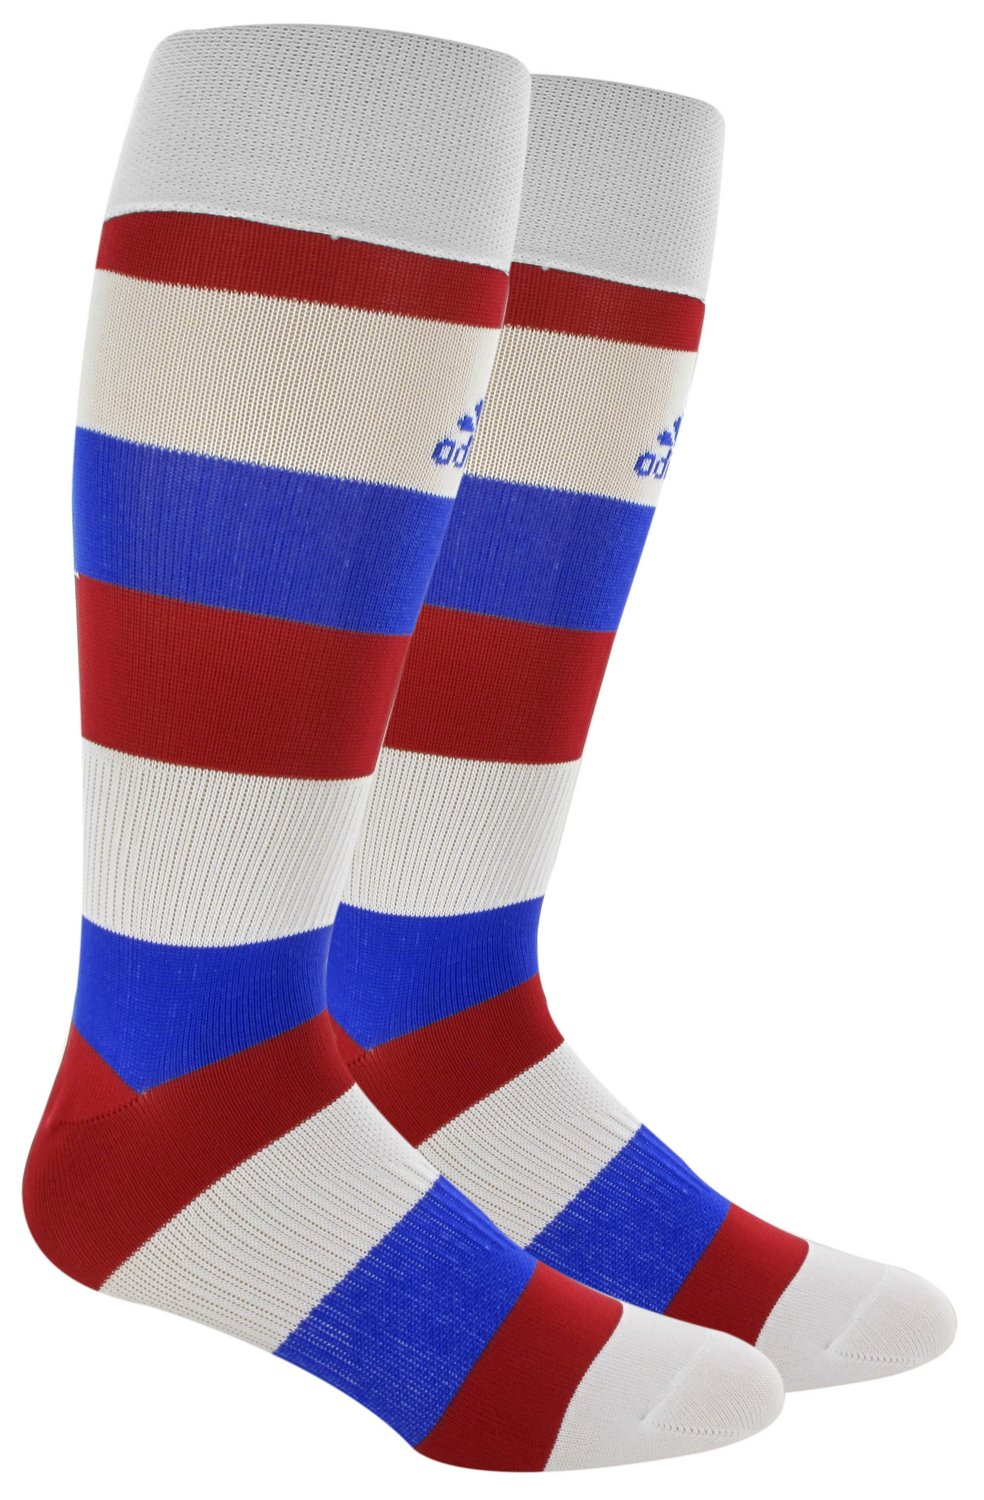 470c568bf1 Display product reviews for adidas Adults' Metro Hoop Over the Calf Soccer  Socks